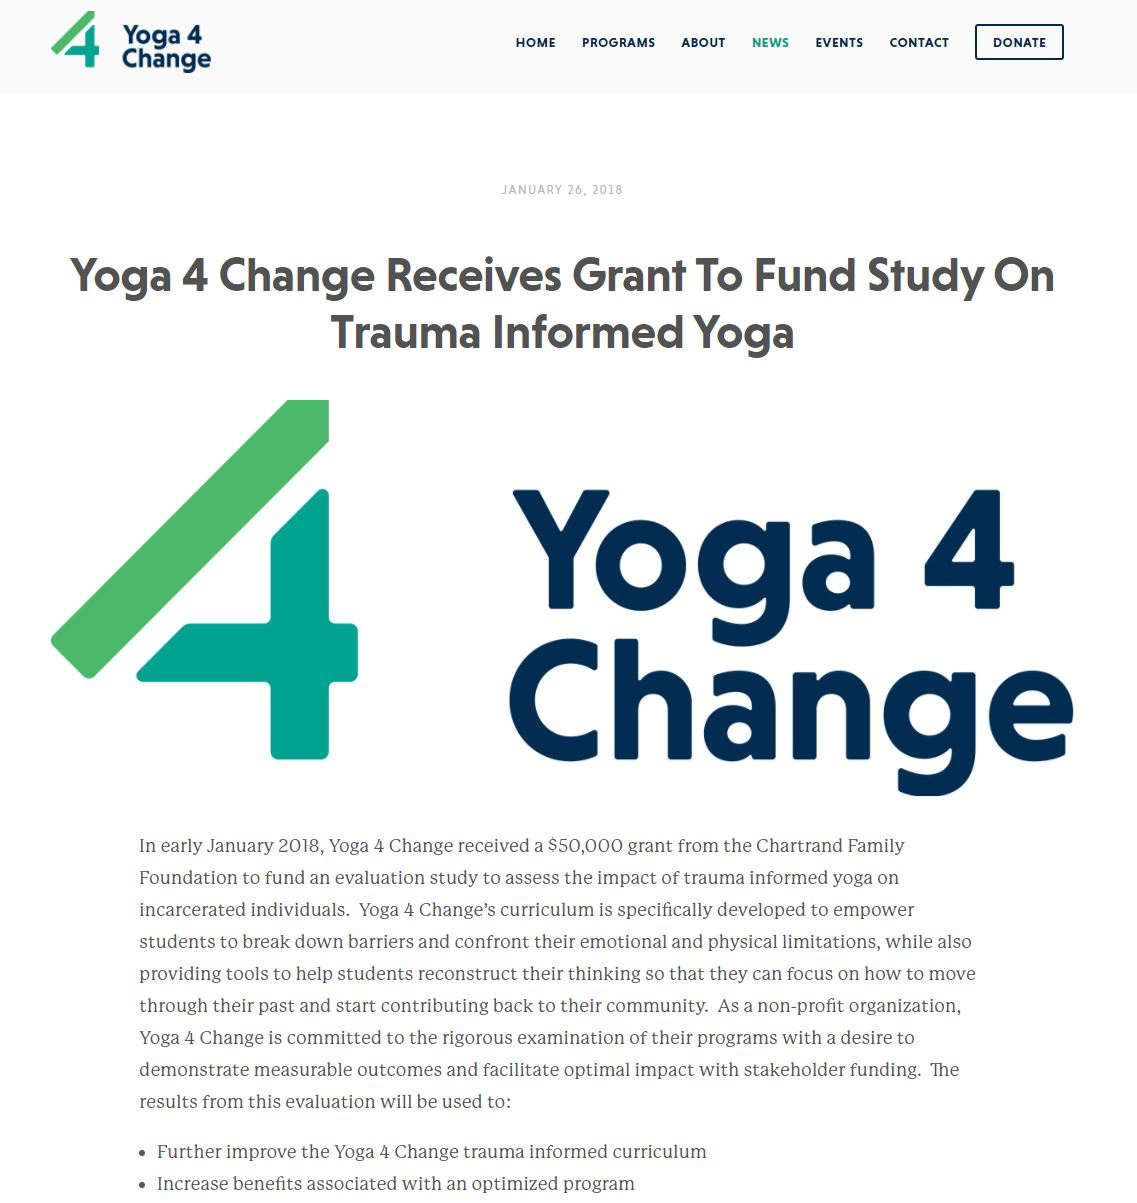 Yoga 4 Change Receives Grant